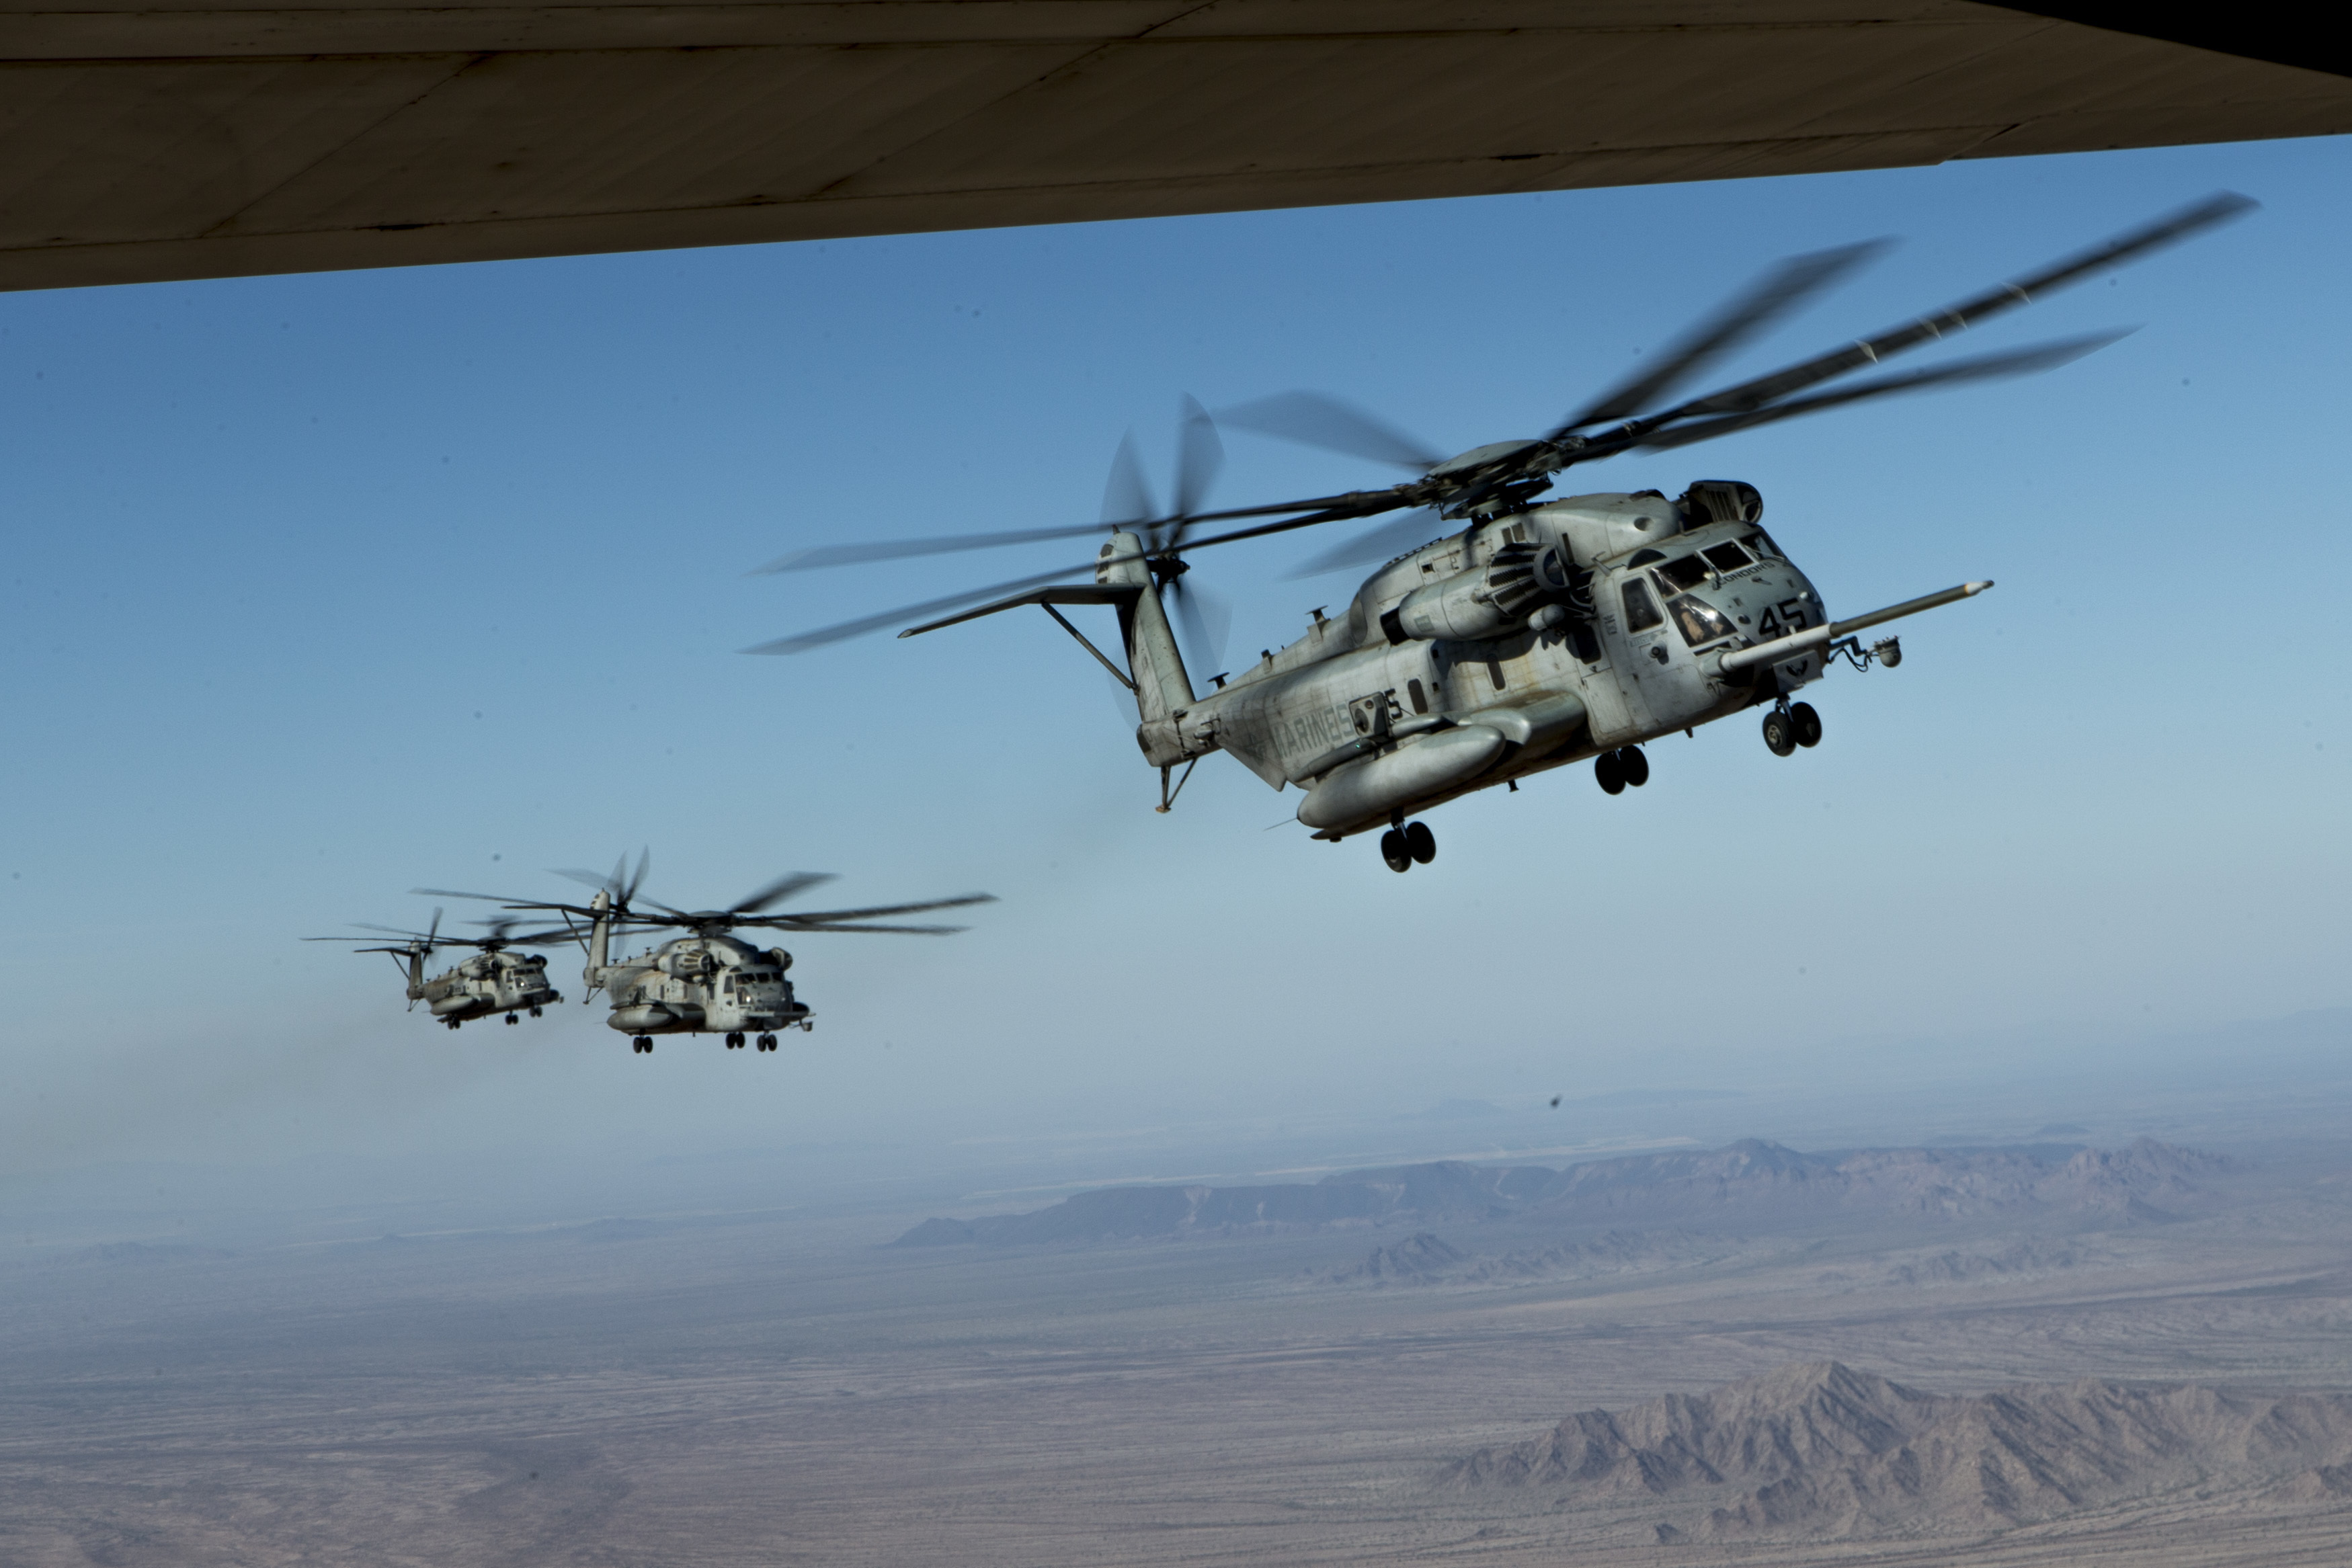 U.S. Marine Corps CH-53E Super Stallions assigned to Marine Aviation Weapons and Tactics Squadron One (MAWTS-1) fly in formation during FINEX-3 near Yuma, Ariz., Oct. 22, 2016. FINEX-3 was part of Weapons Tactics Instructors (WTI) course 1-17, a seven week training event hosted by MAWTS-1 cadre which emphasizes operational integration of the six functions of Marine Corps aviation in support of a Marine Air Ground Task Force. MAWTS-1 provides standardized advanced tactical training and certification of unit instructor qualifications to support Marine aviation Training and Readiness and assists in developing and employing aviation weapons and tactics. (U.S. Marine Corps photo by Lance Cpl. Andrew Huff)